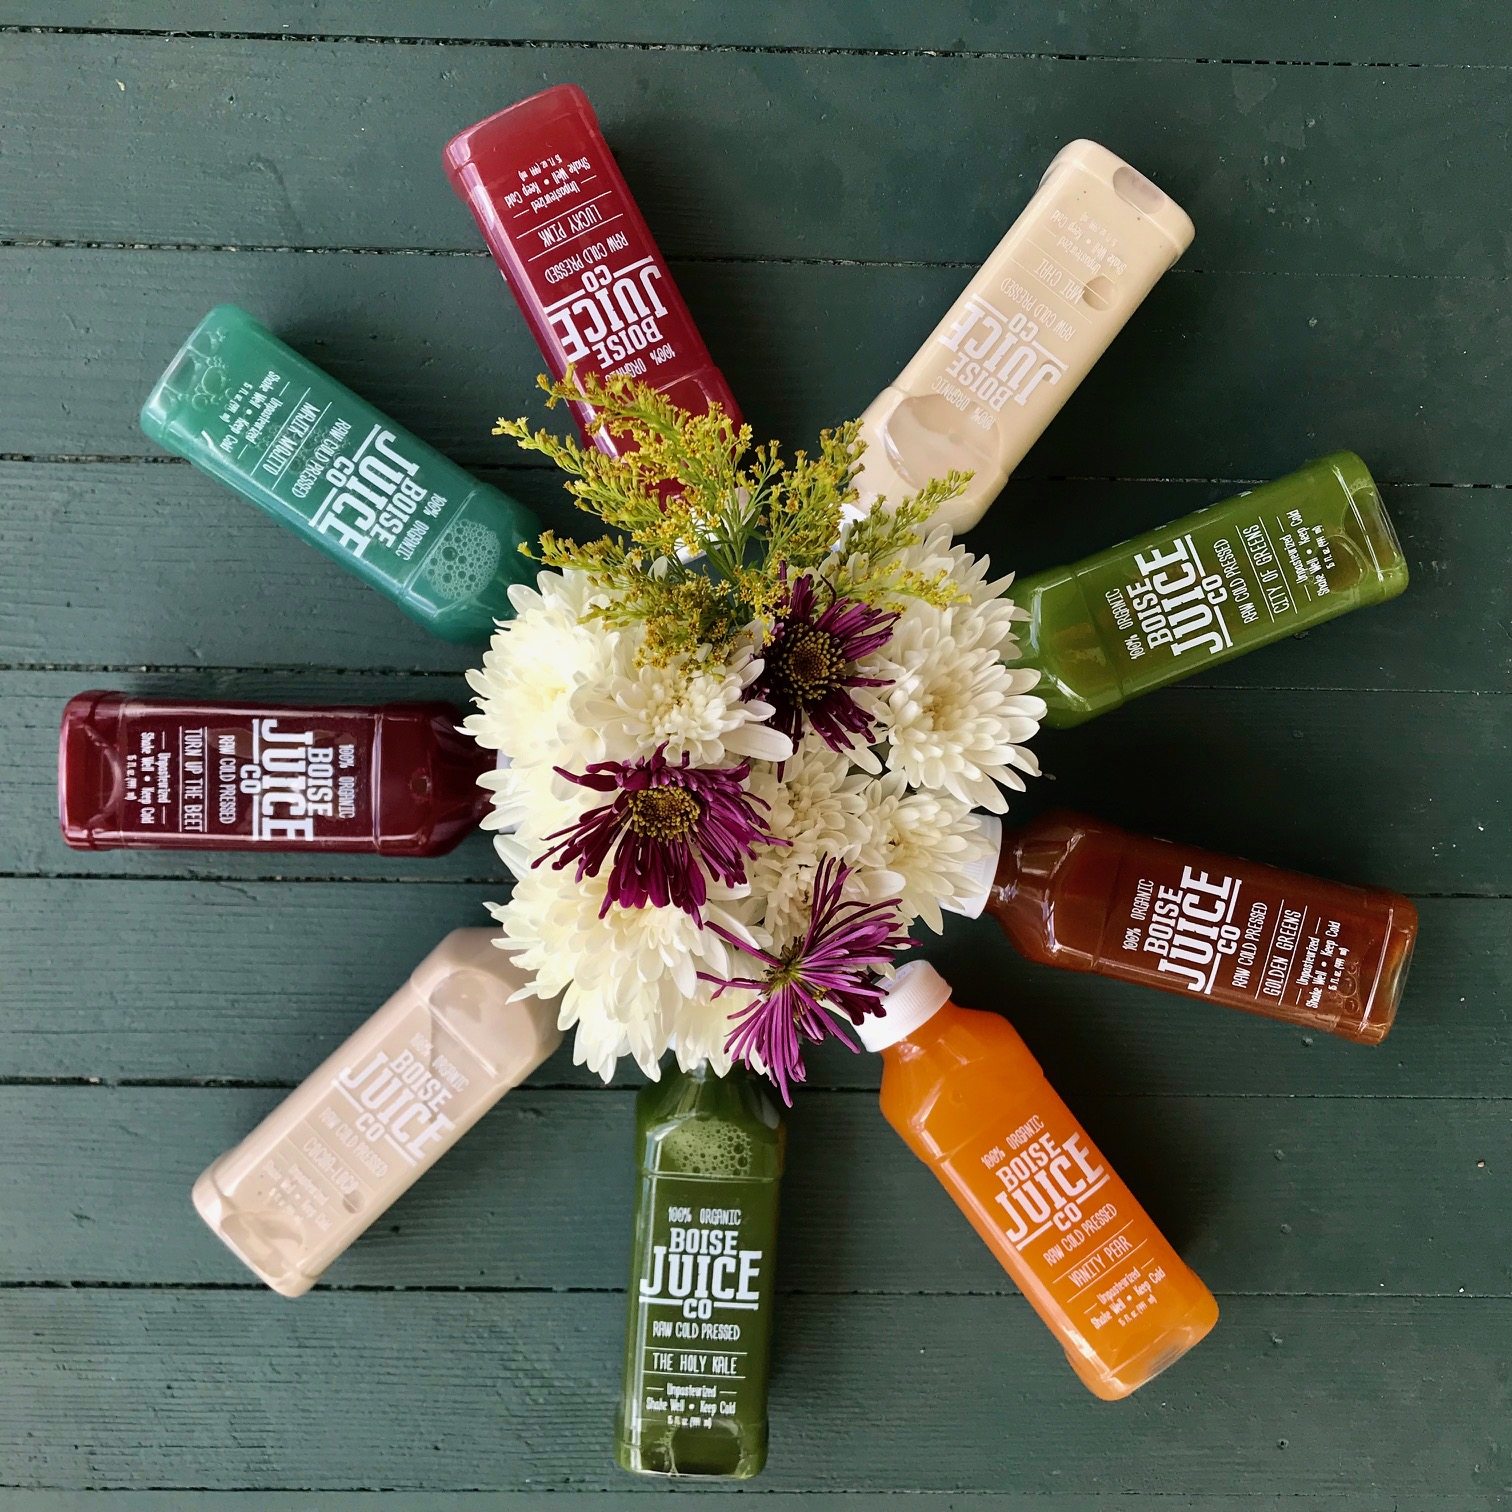 Boise Juice Co. 8.jpg